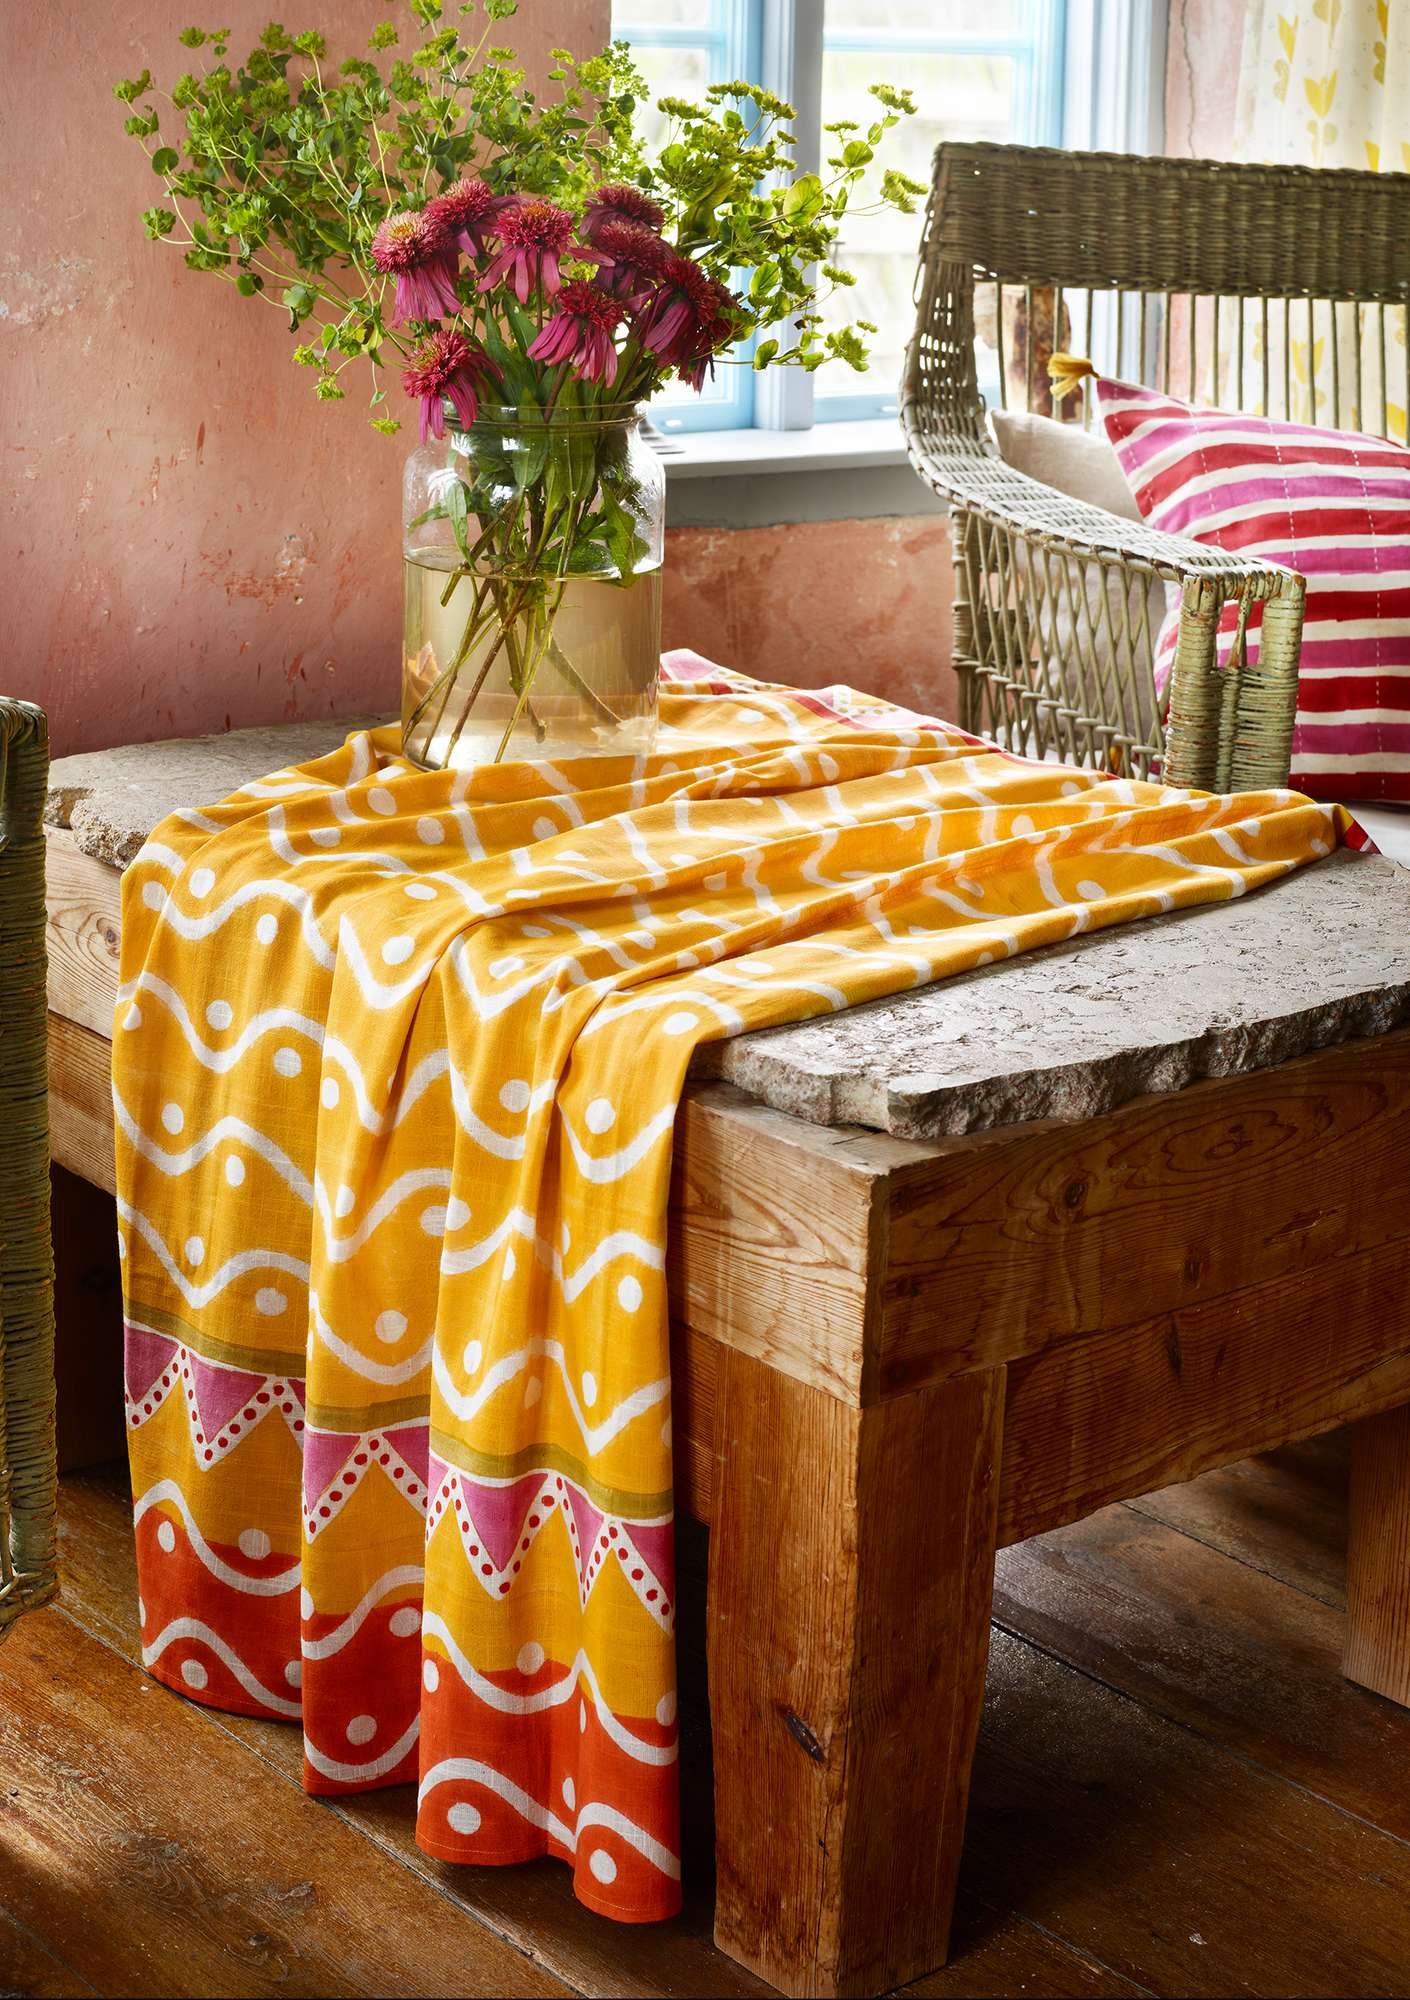 Blockdruck-Tischdecke Elder pineapple